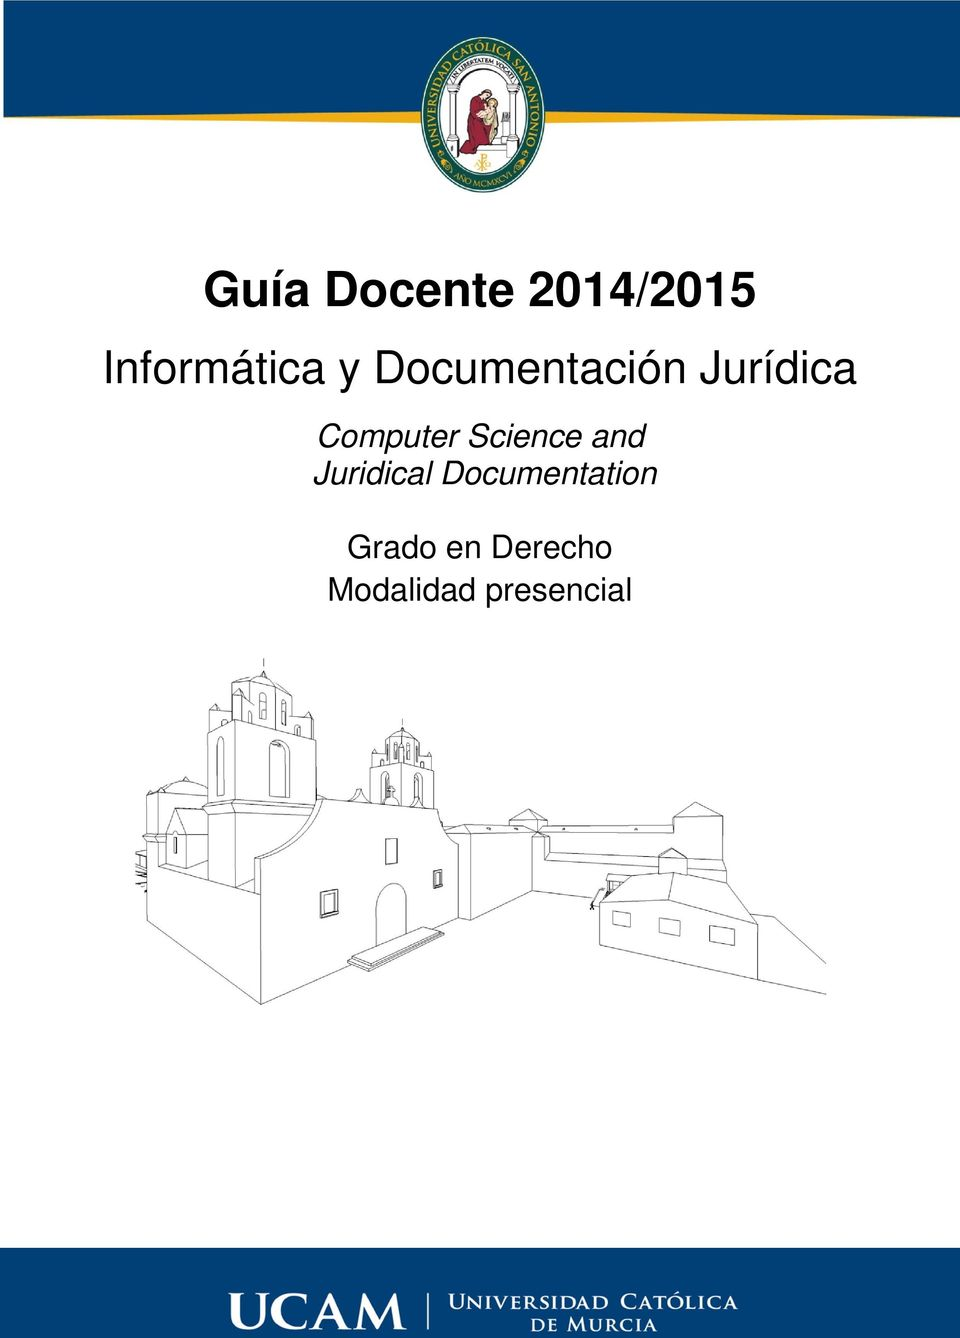 Science and Juridical Documentation